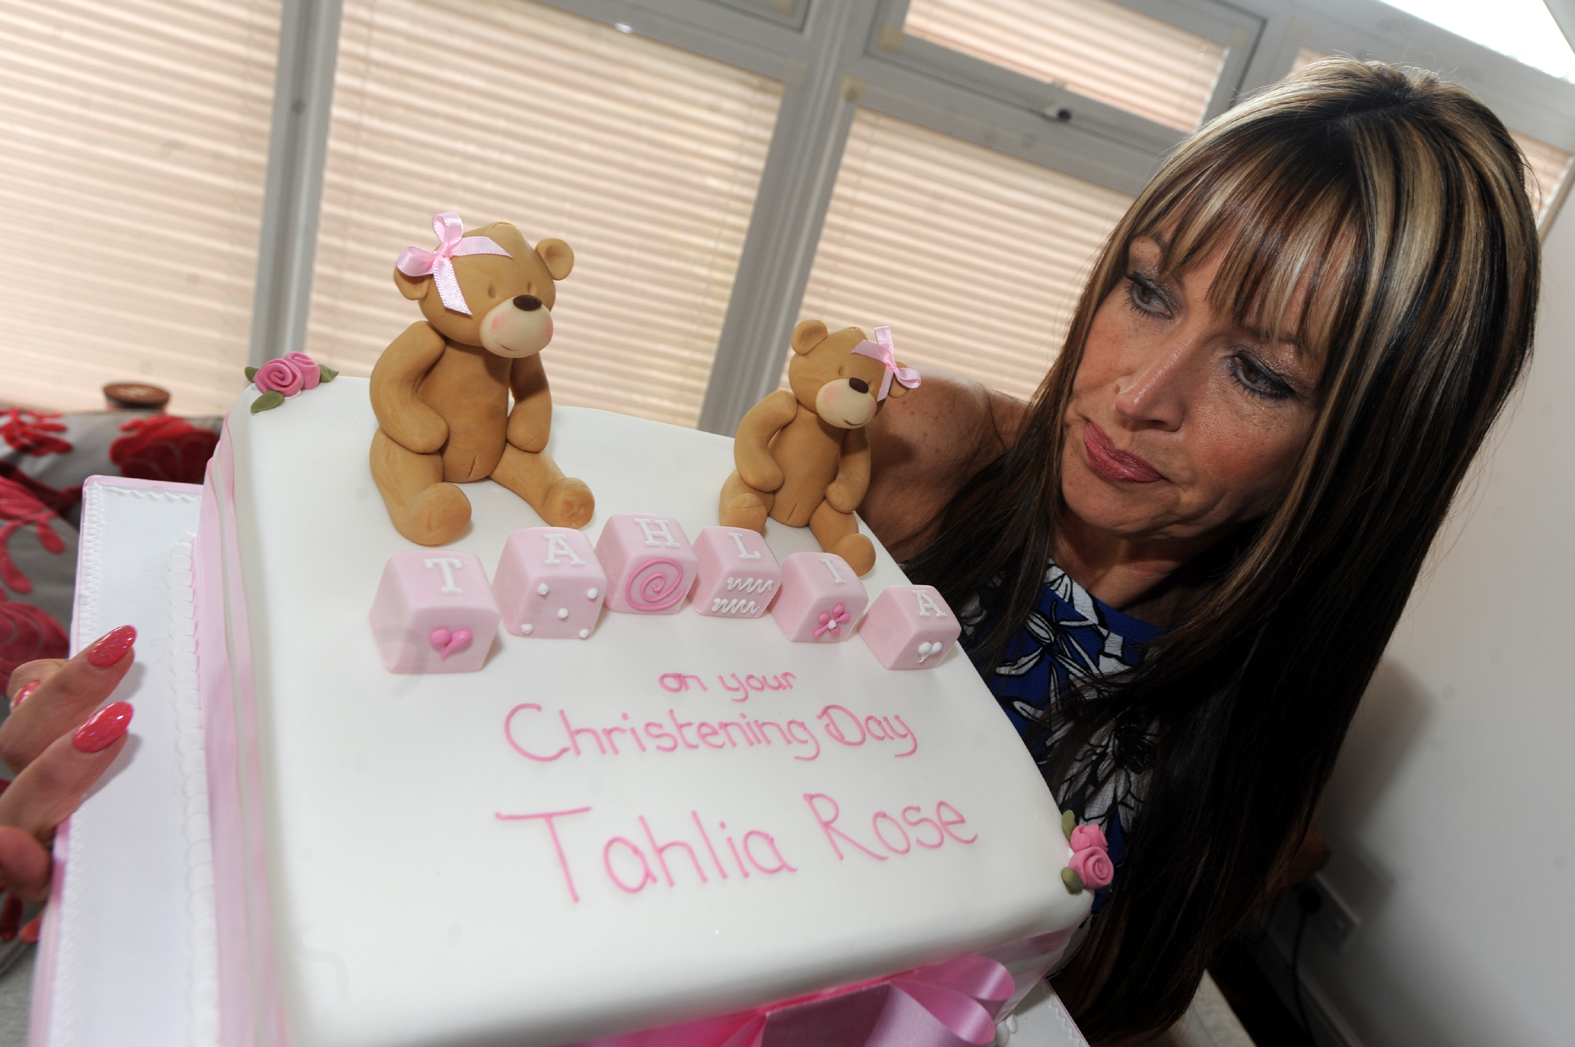 Sharon Green ordered a Christening Cake from Occasion Cakes in Wigan (their headquarters are in Bolton) the teddy on the cake appears to have a vagina. Sharon has asked for a full refund but the company has refused.